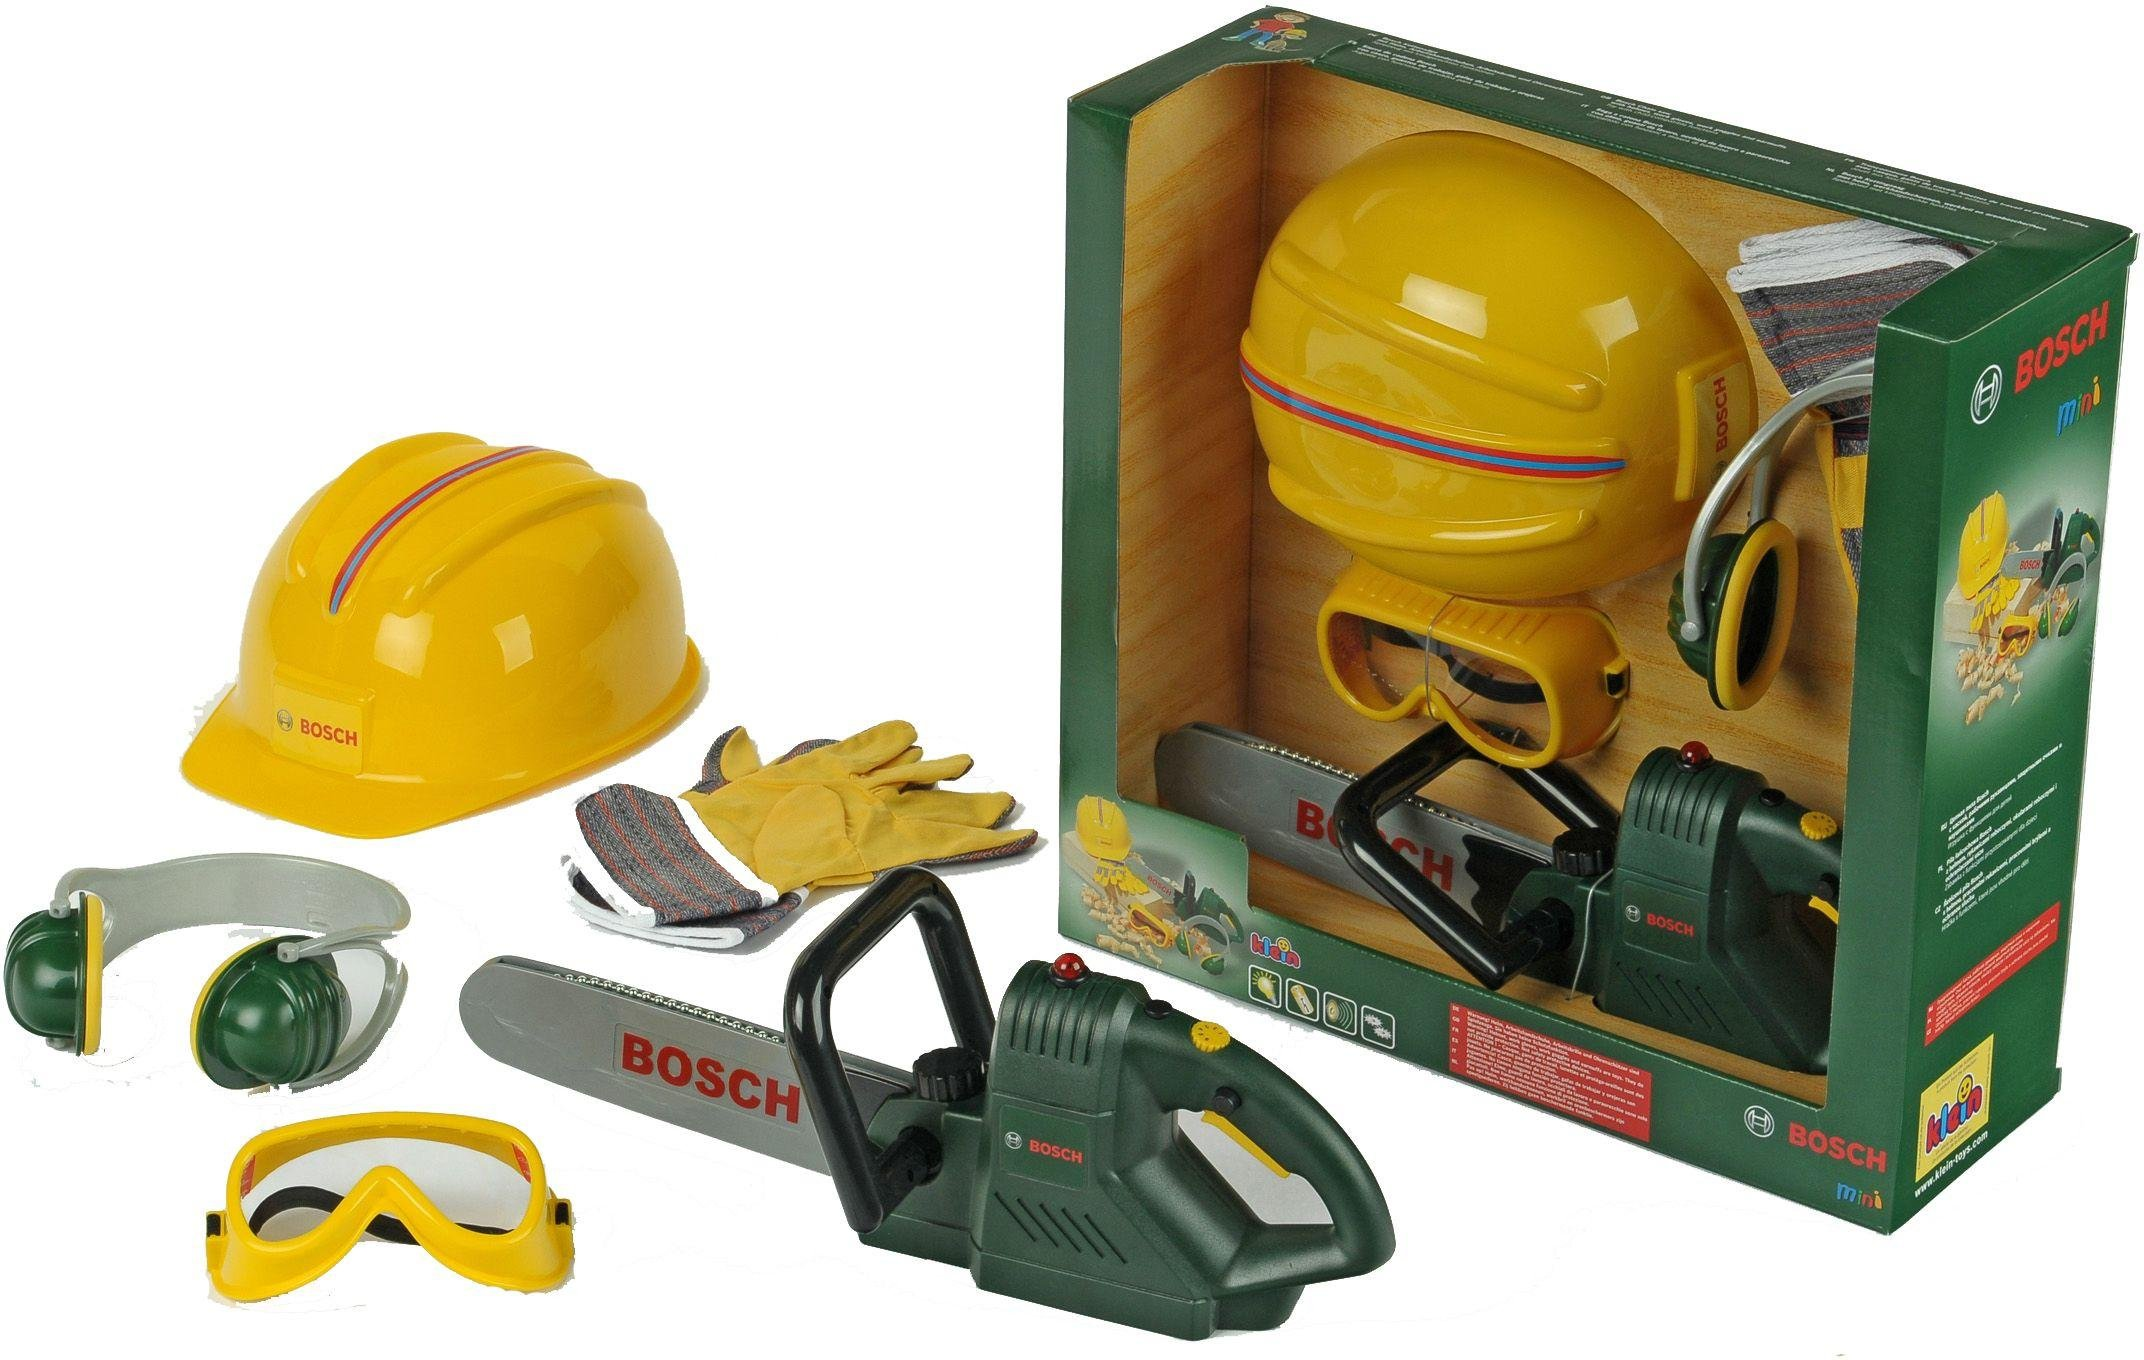 Image of Bosch Junior - Toy Chainsaw, Helmet and Accessories